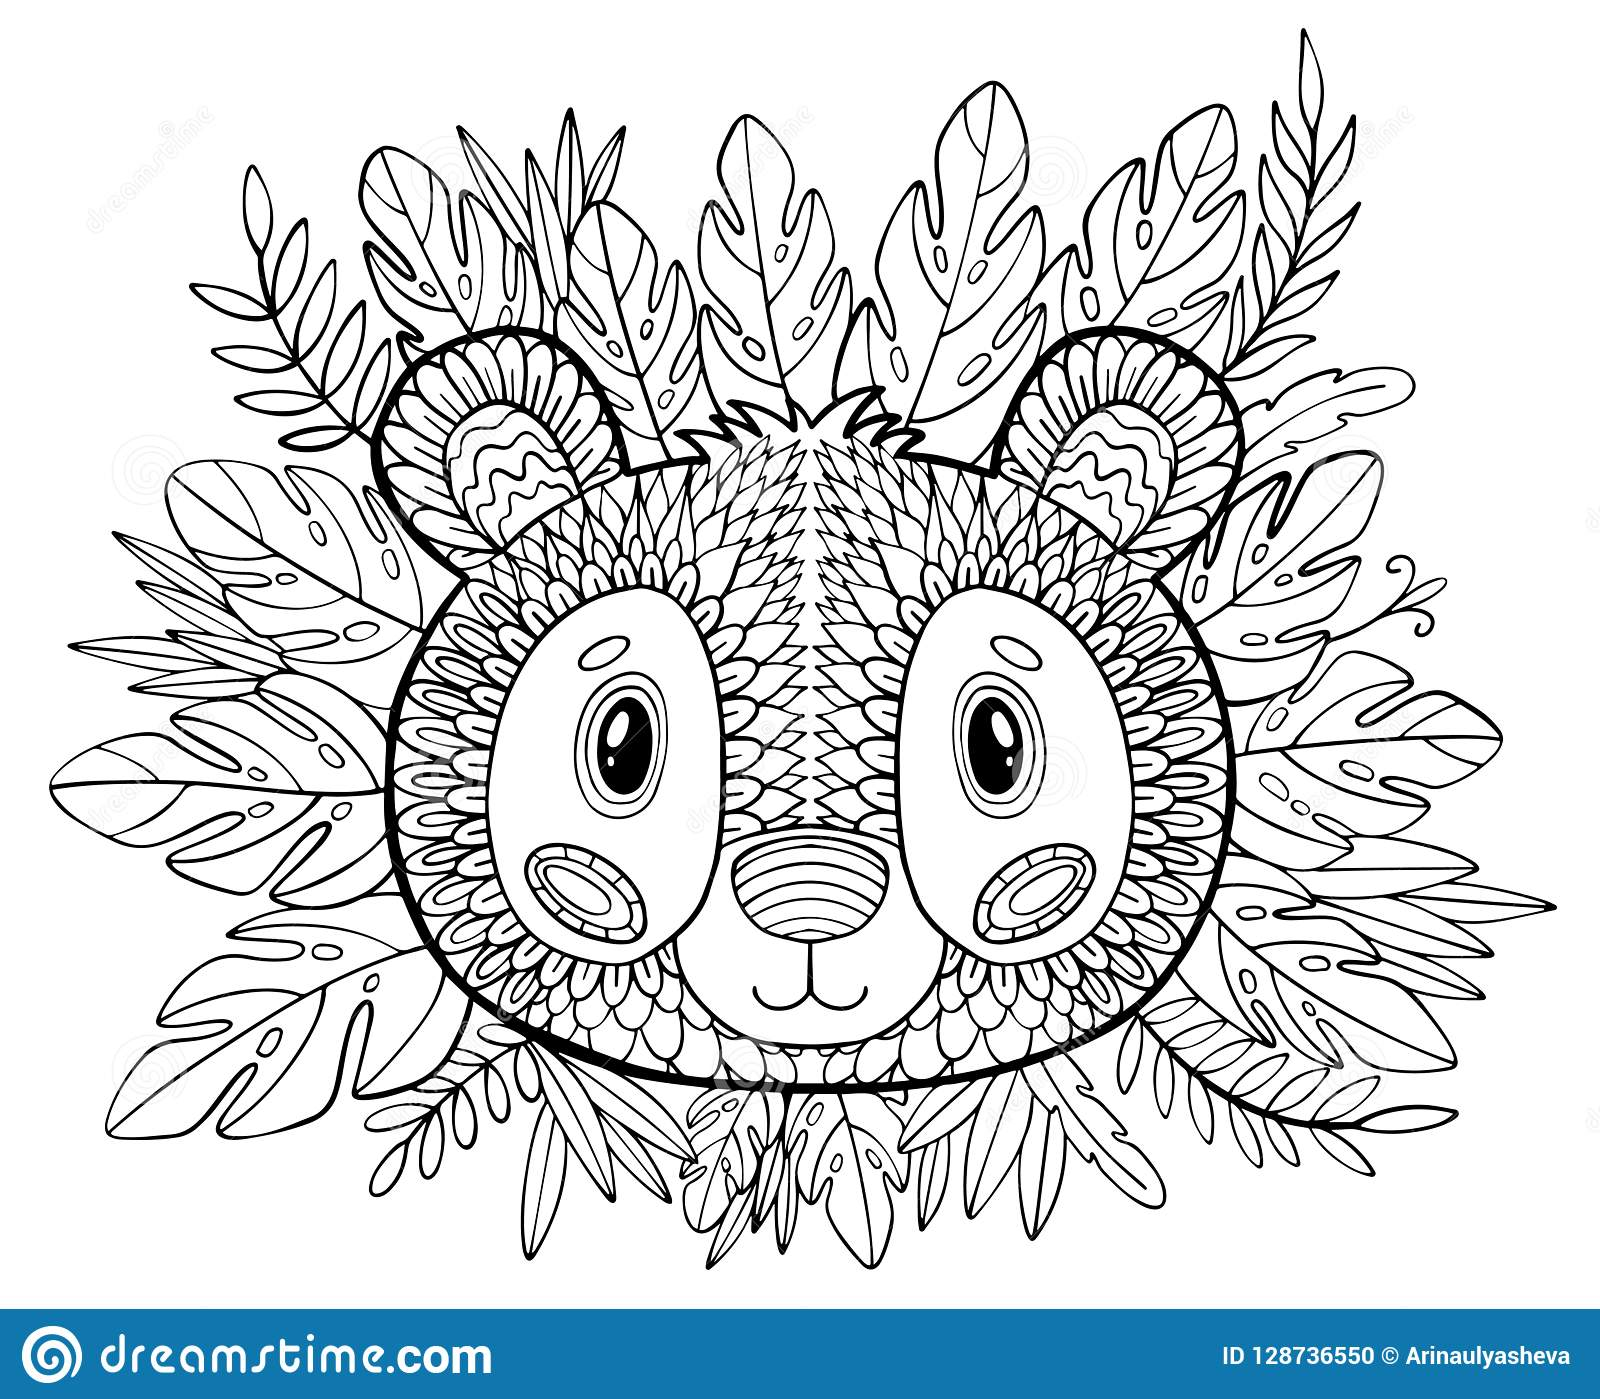 Coloring Pages. Coloring Book For Adults. Beautiful Template ...